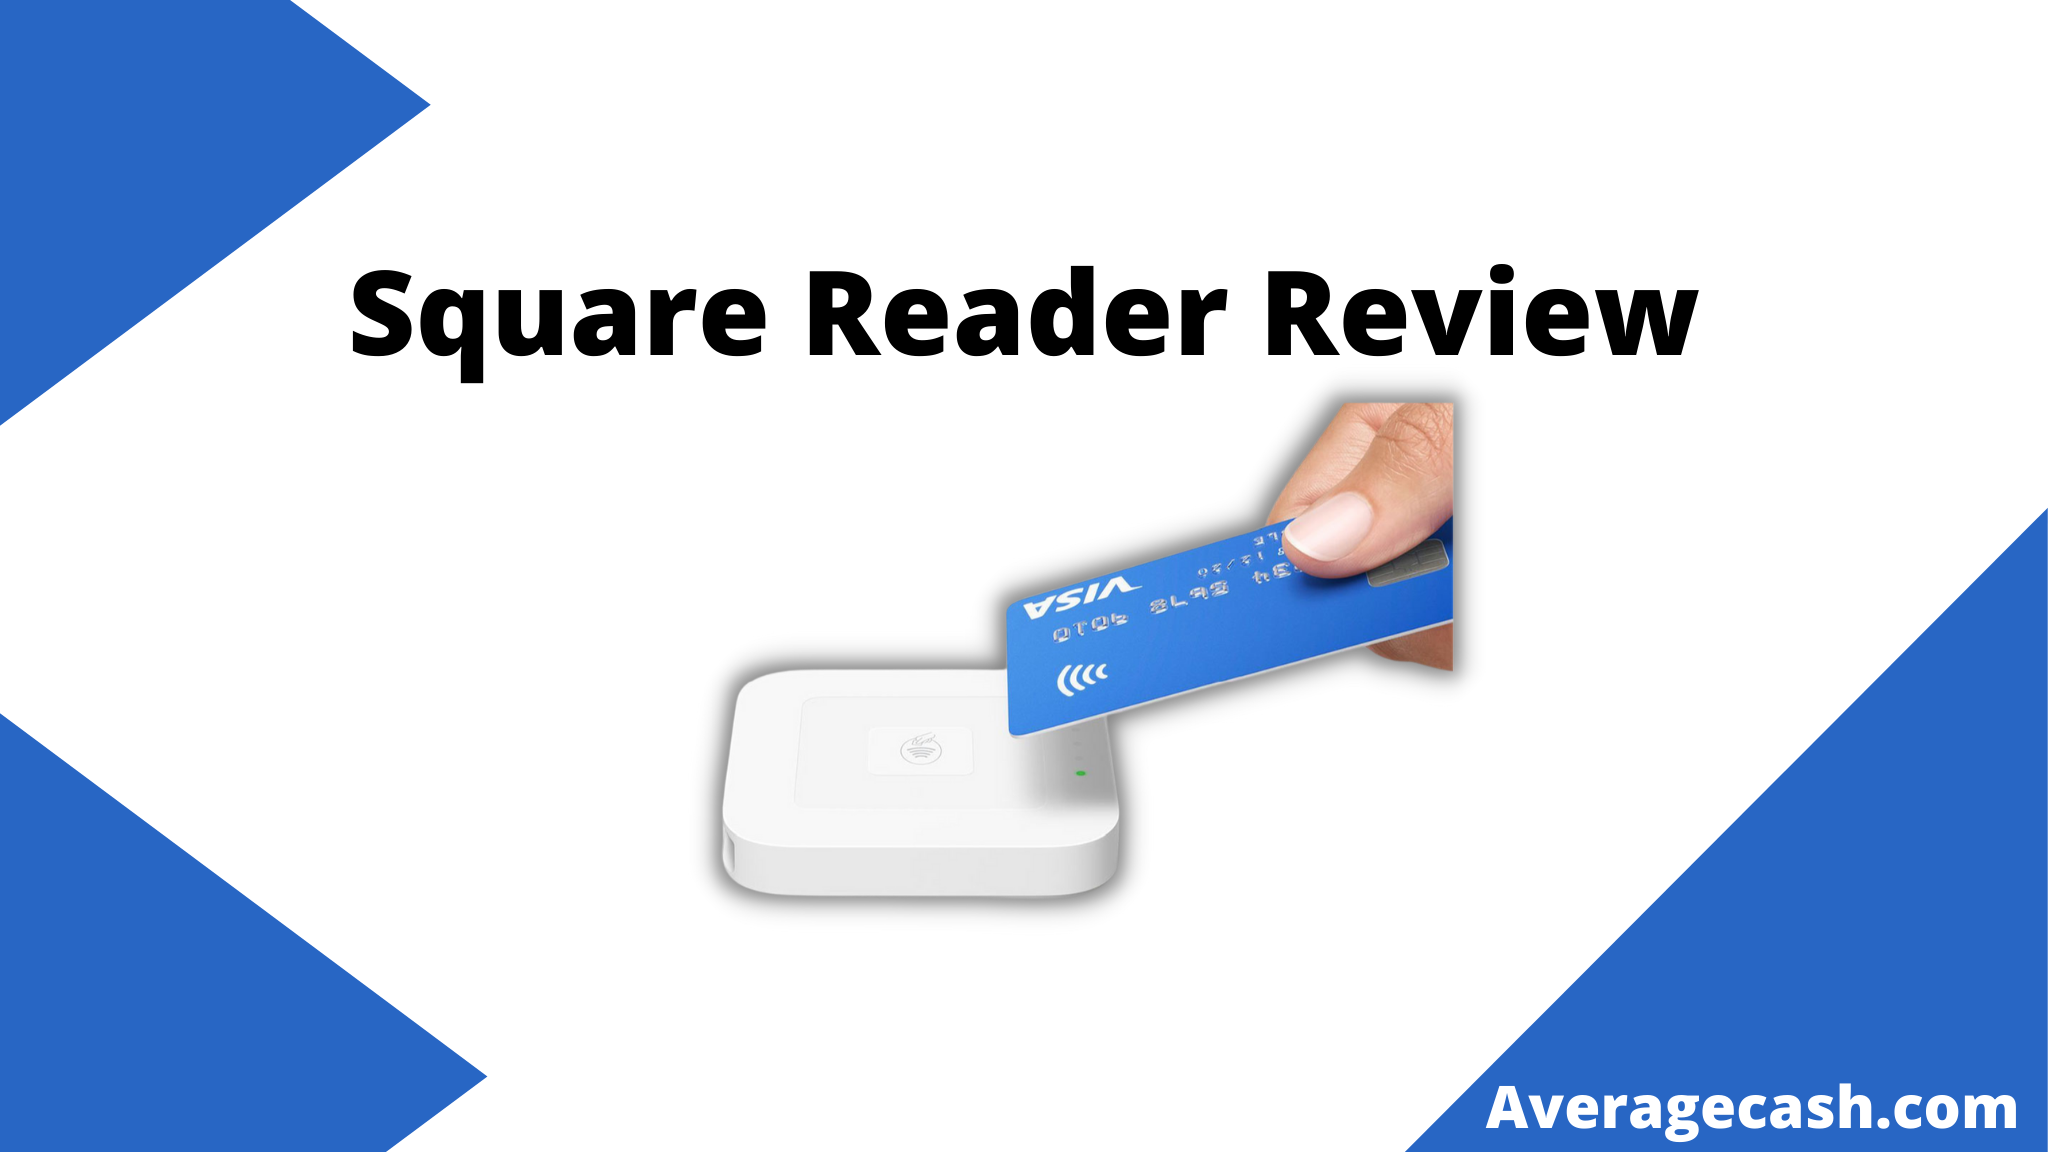 Square Reader Review